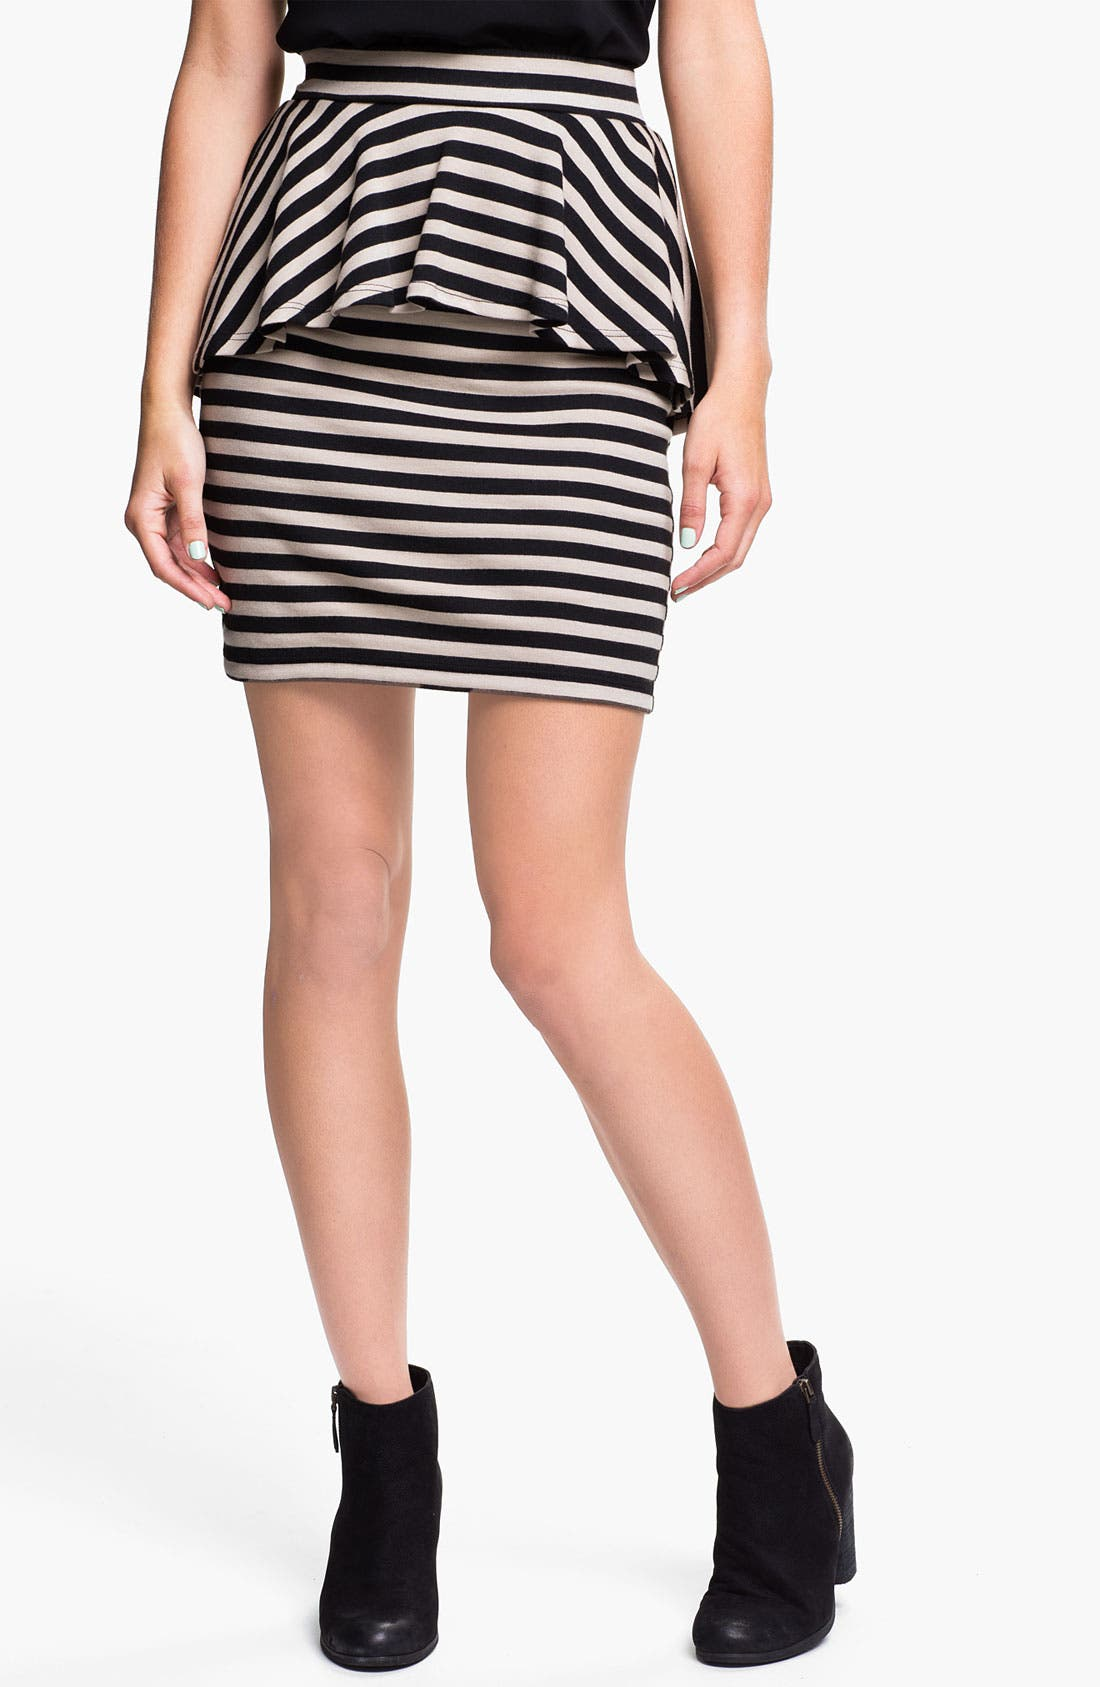 Alternate Image 1 Selected - h.i.p. Stripe Peplum Skirt (Juniors)